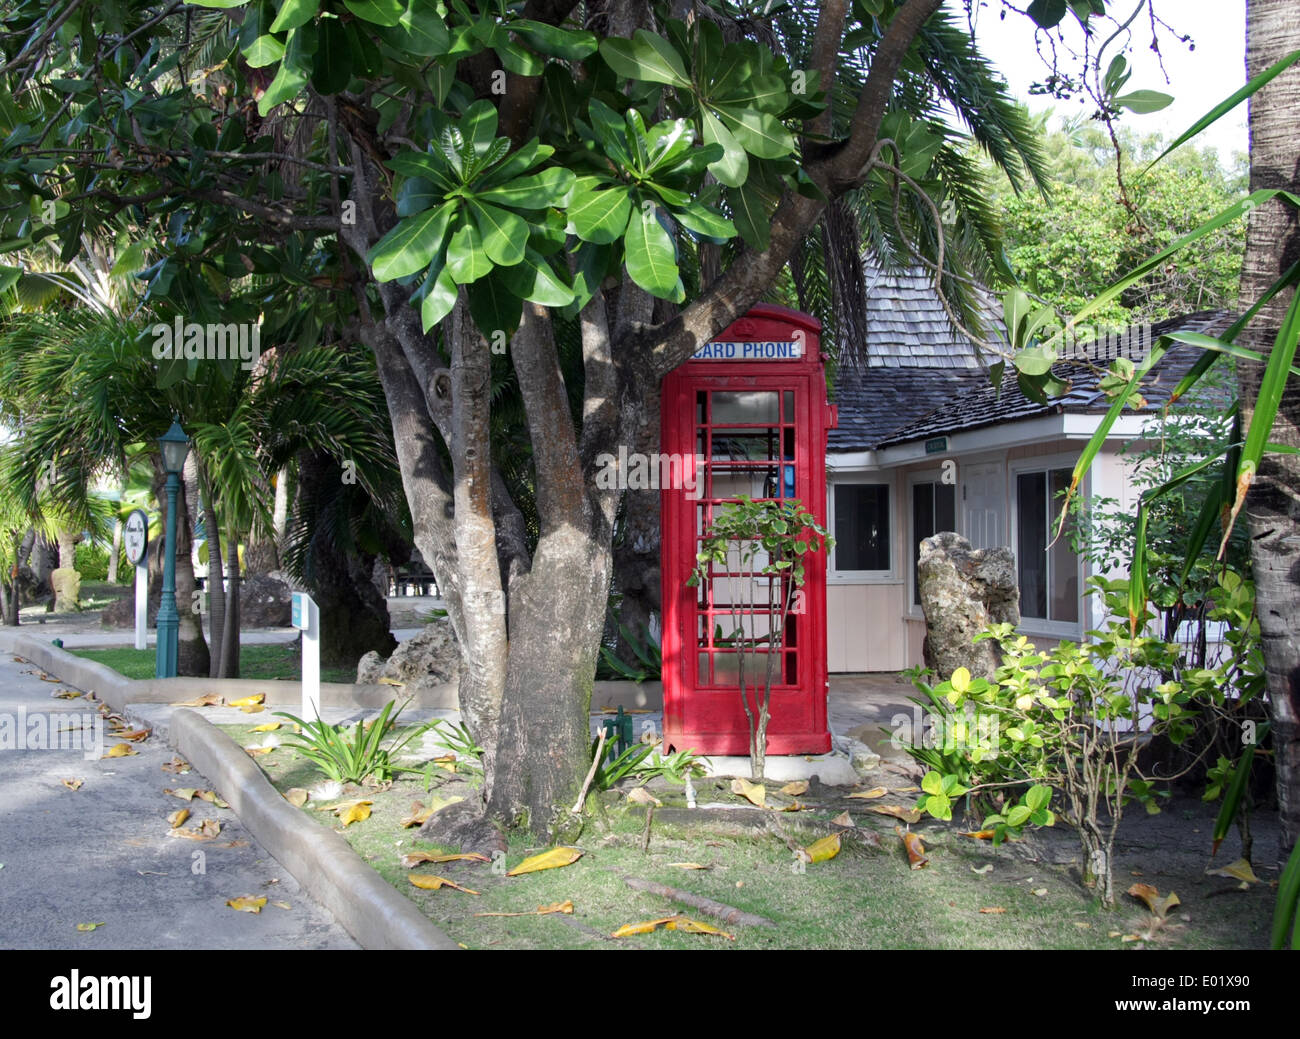 British telephone kiosk red phone box on the Caribbean island of Antigua - Stock Image